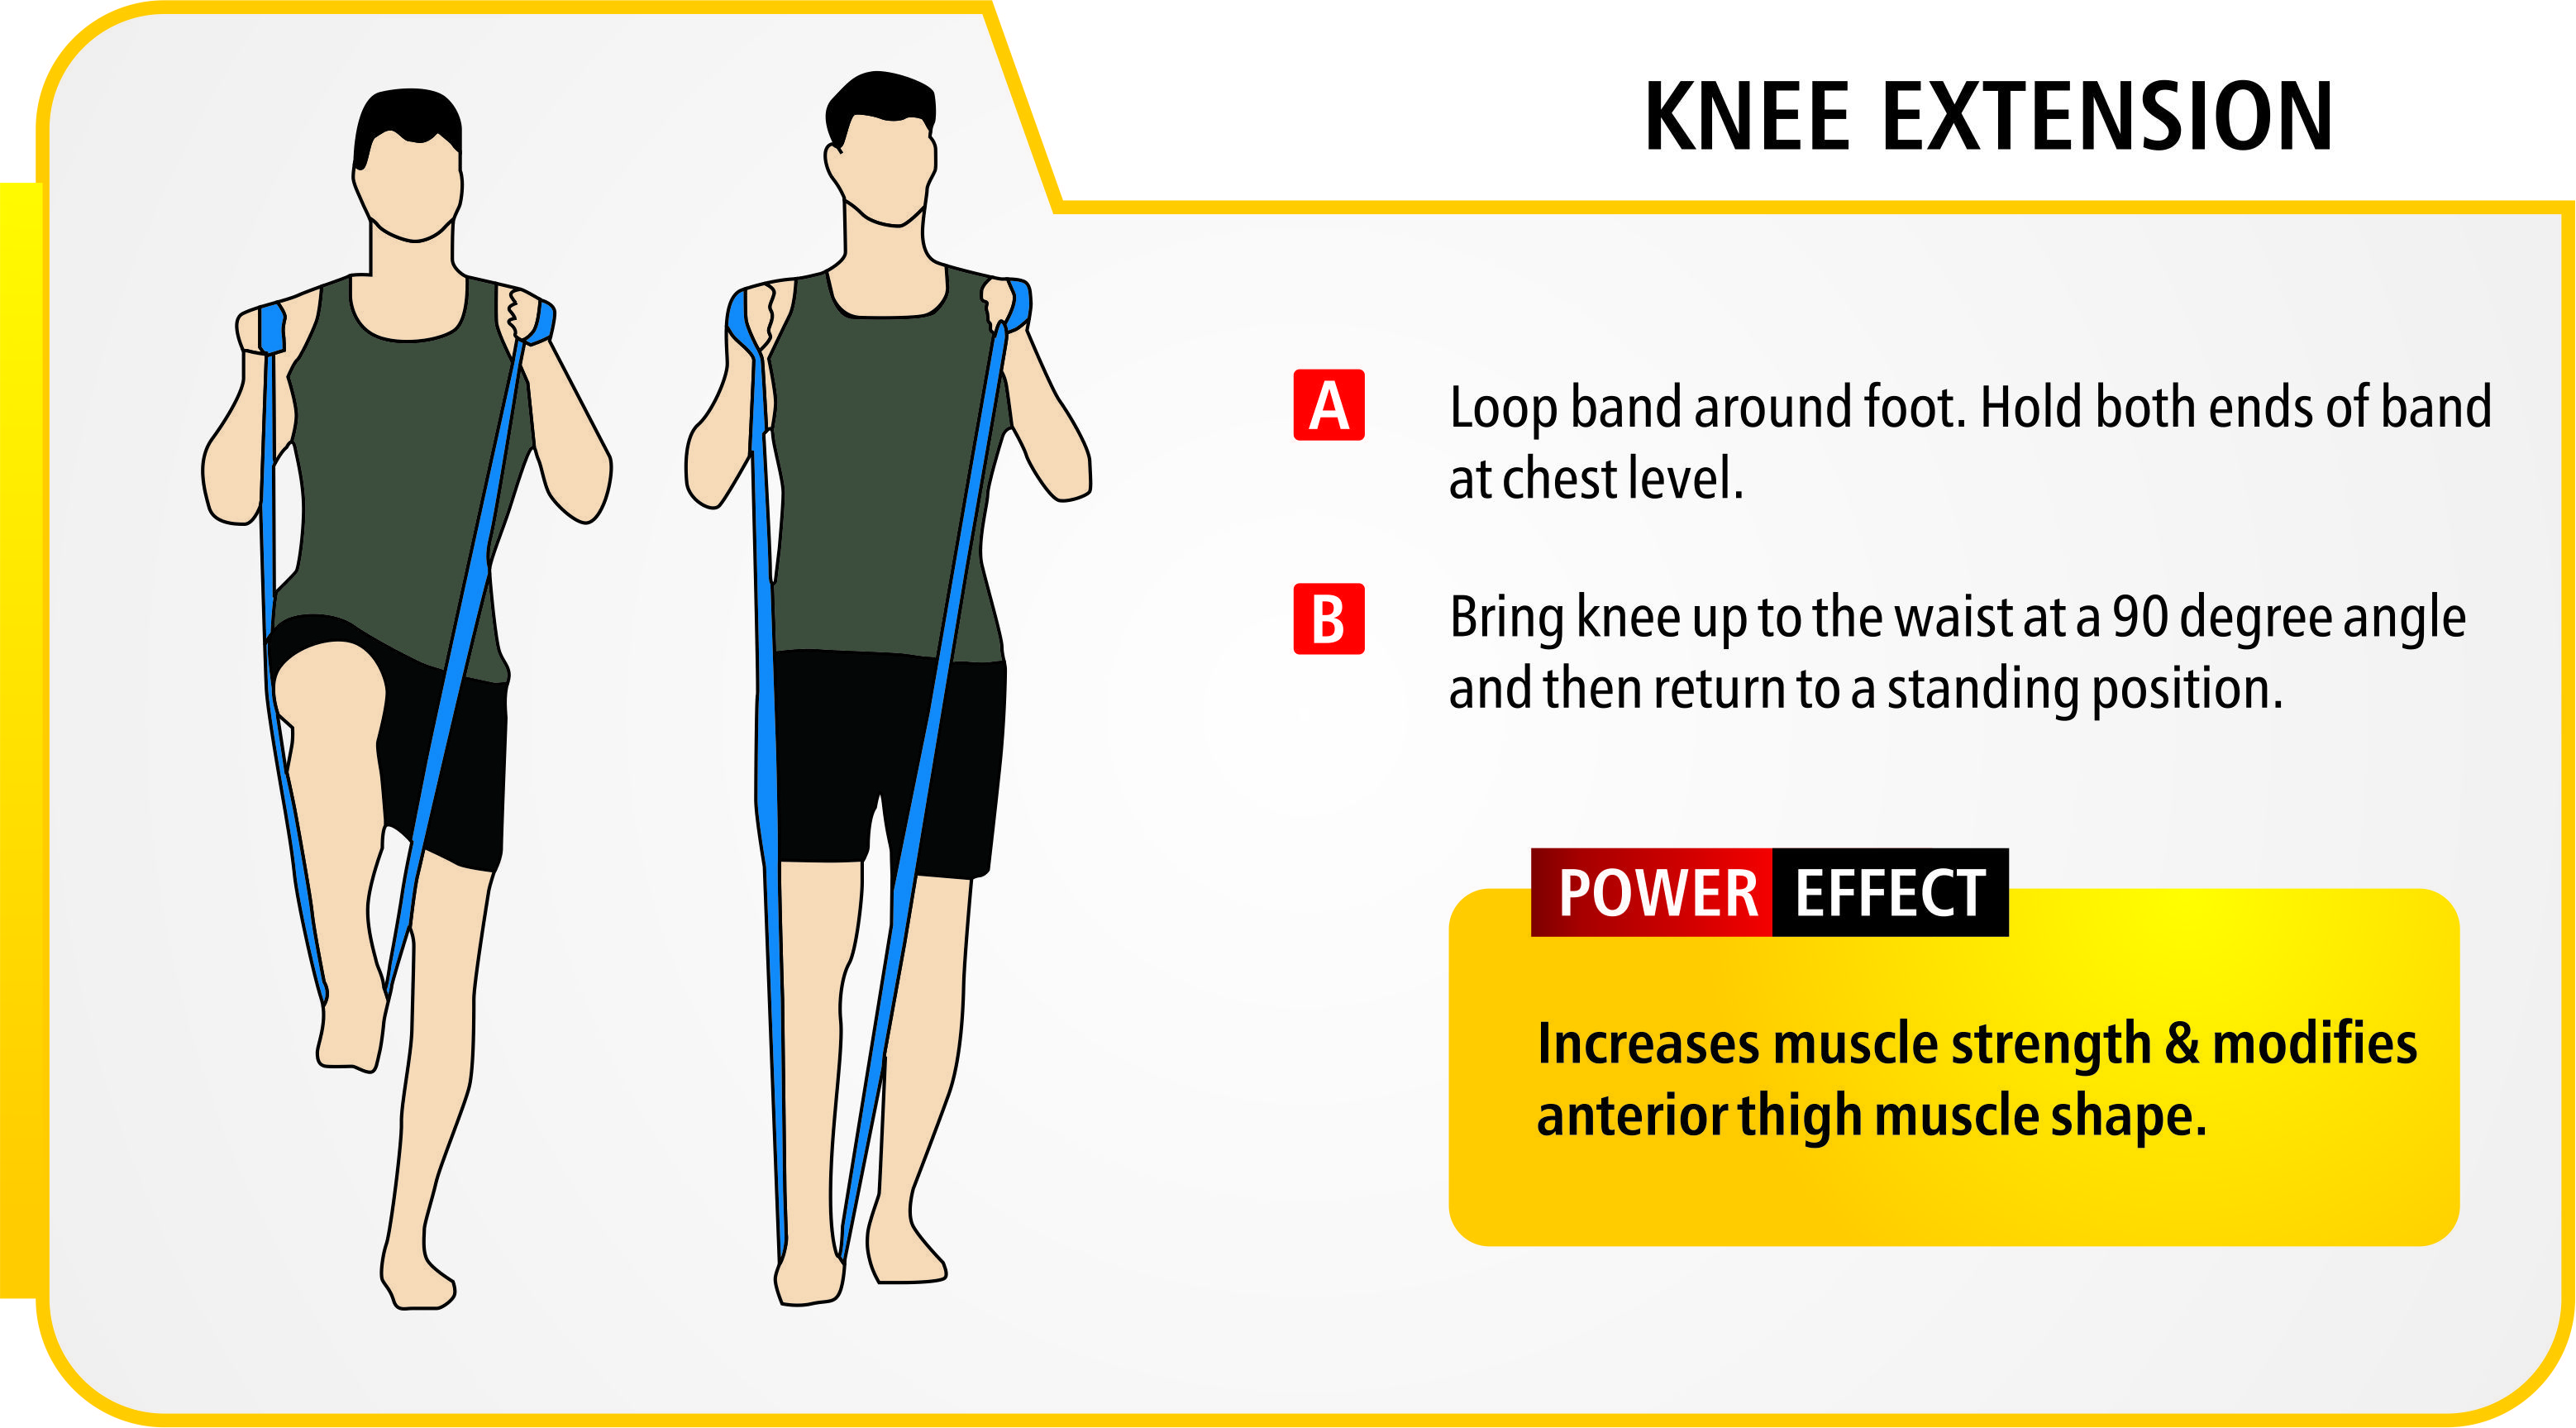 Knee Extension Exercise Resistance Bands Should Be Used Under